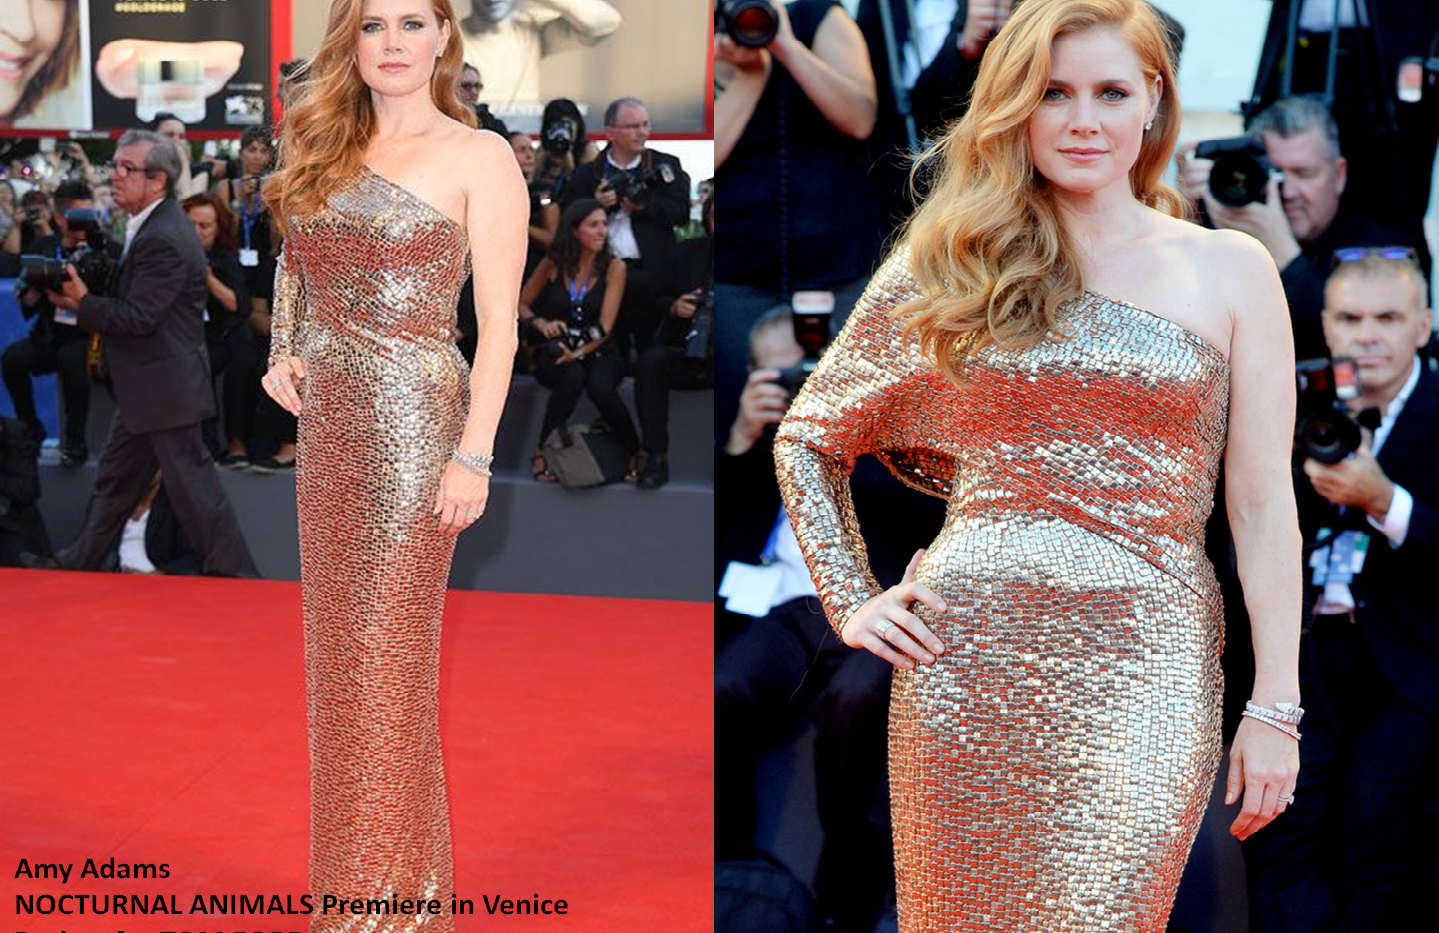 "Amy Adams at ""Nocturnal Animals"" premiere in Venice wearing black gold - Project for TOM FORD - pattern making - dressmaking - fitting / tailoring - managing - garment technology consult"